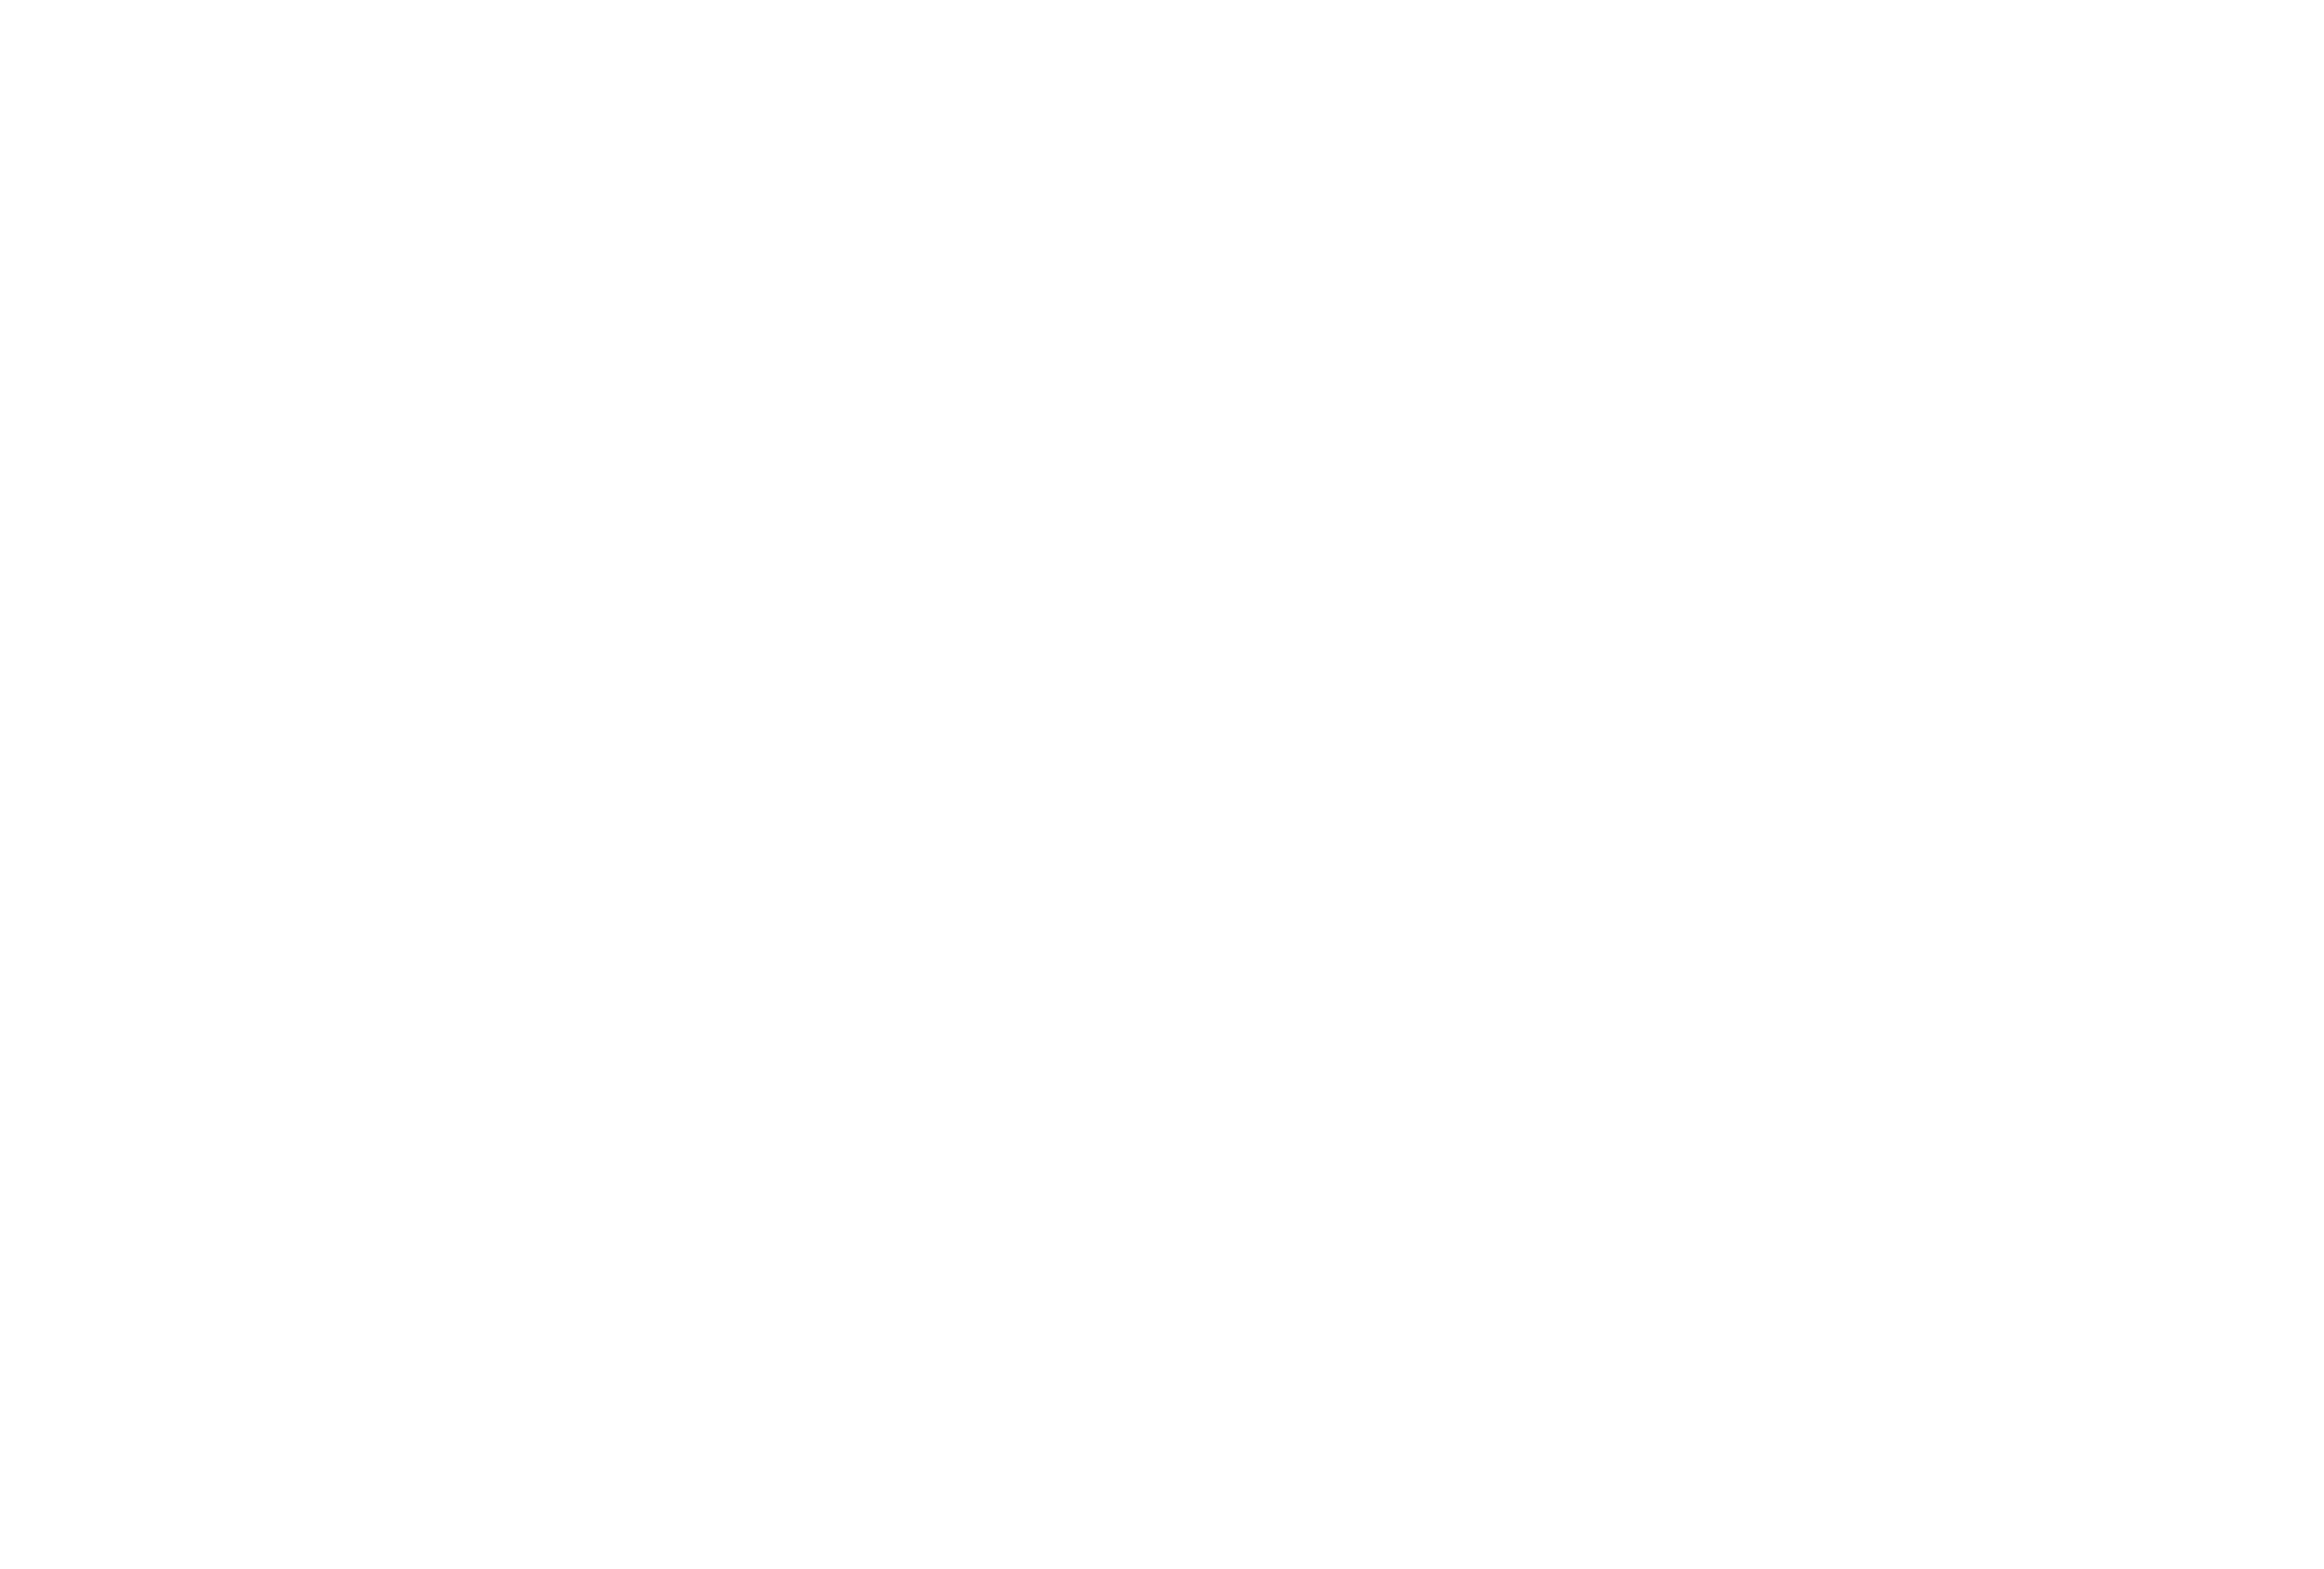 With Love, Harper